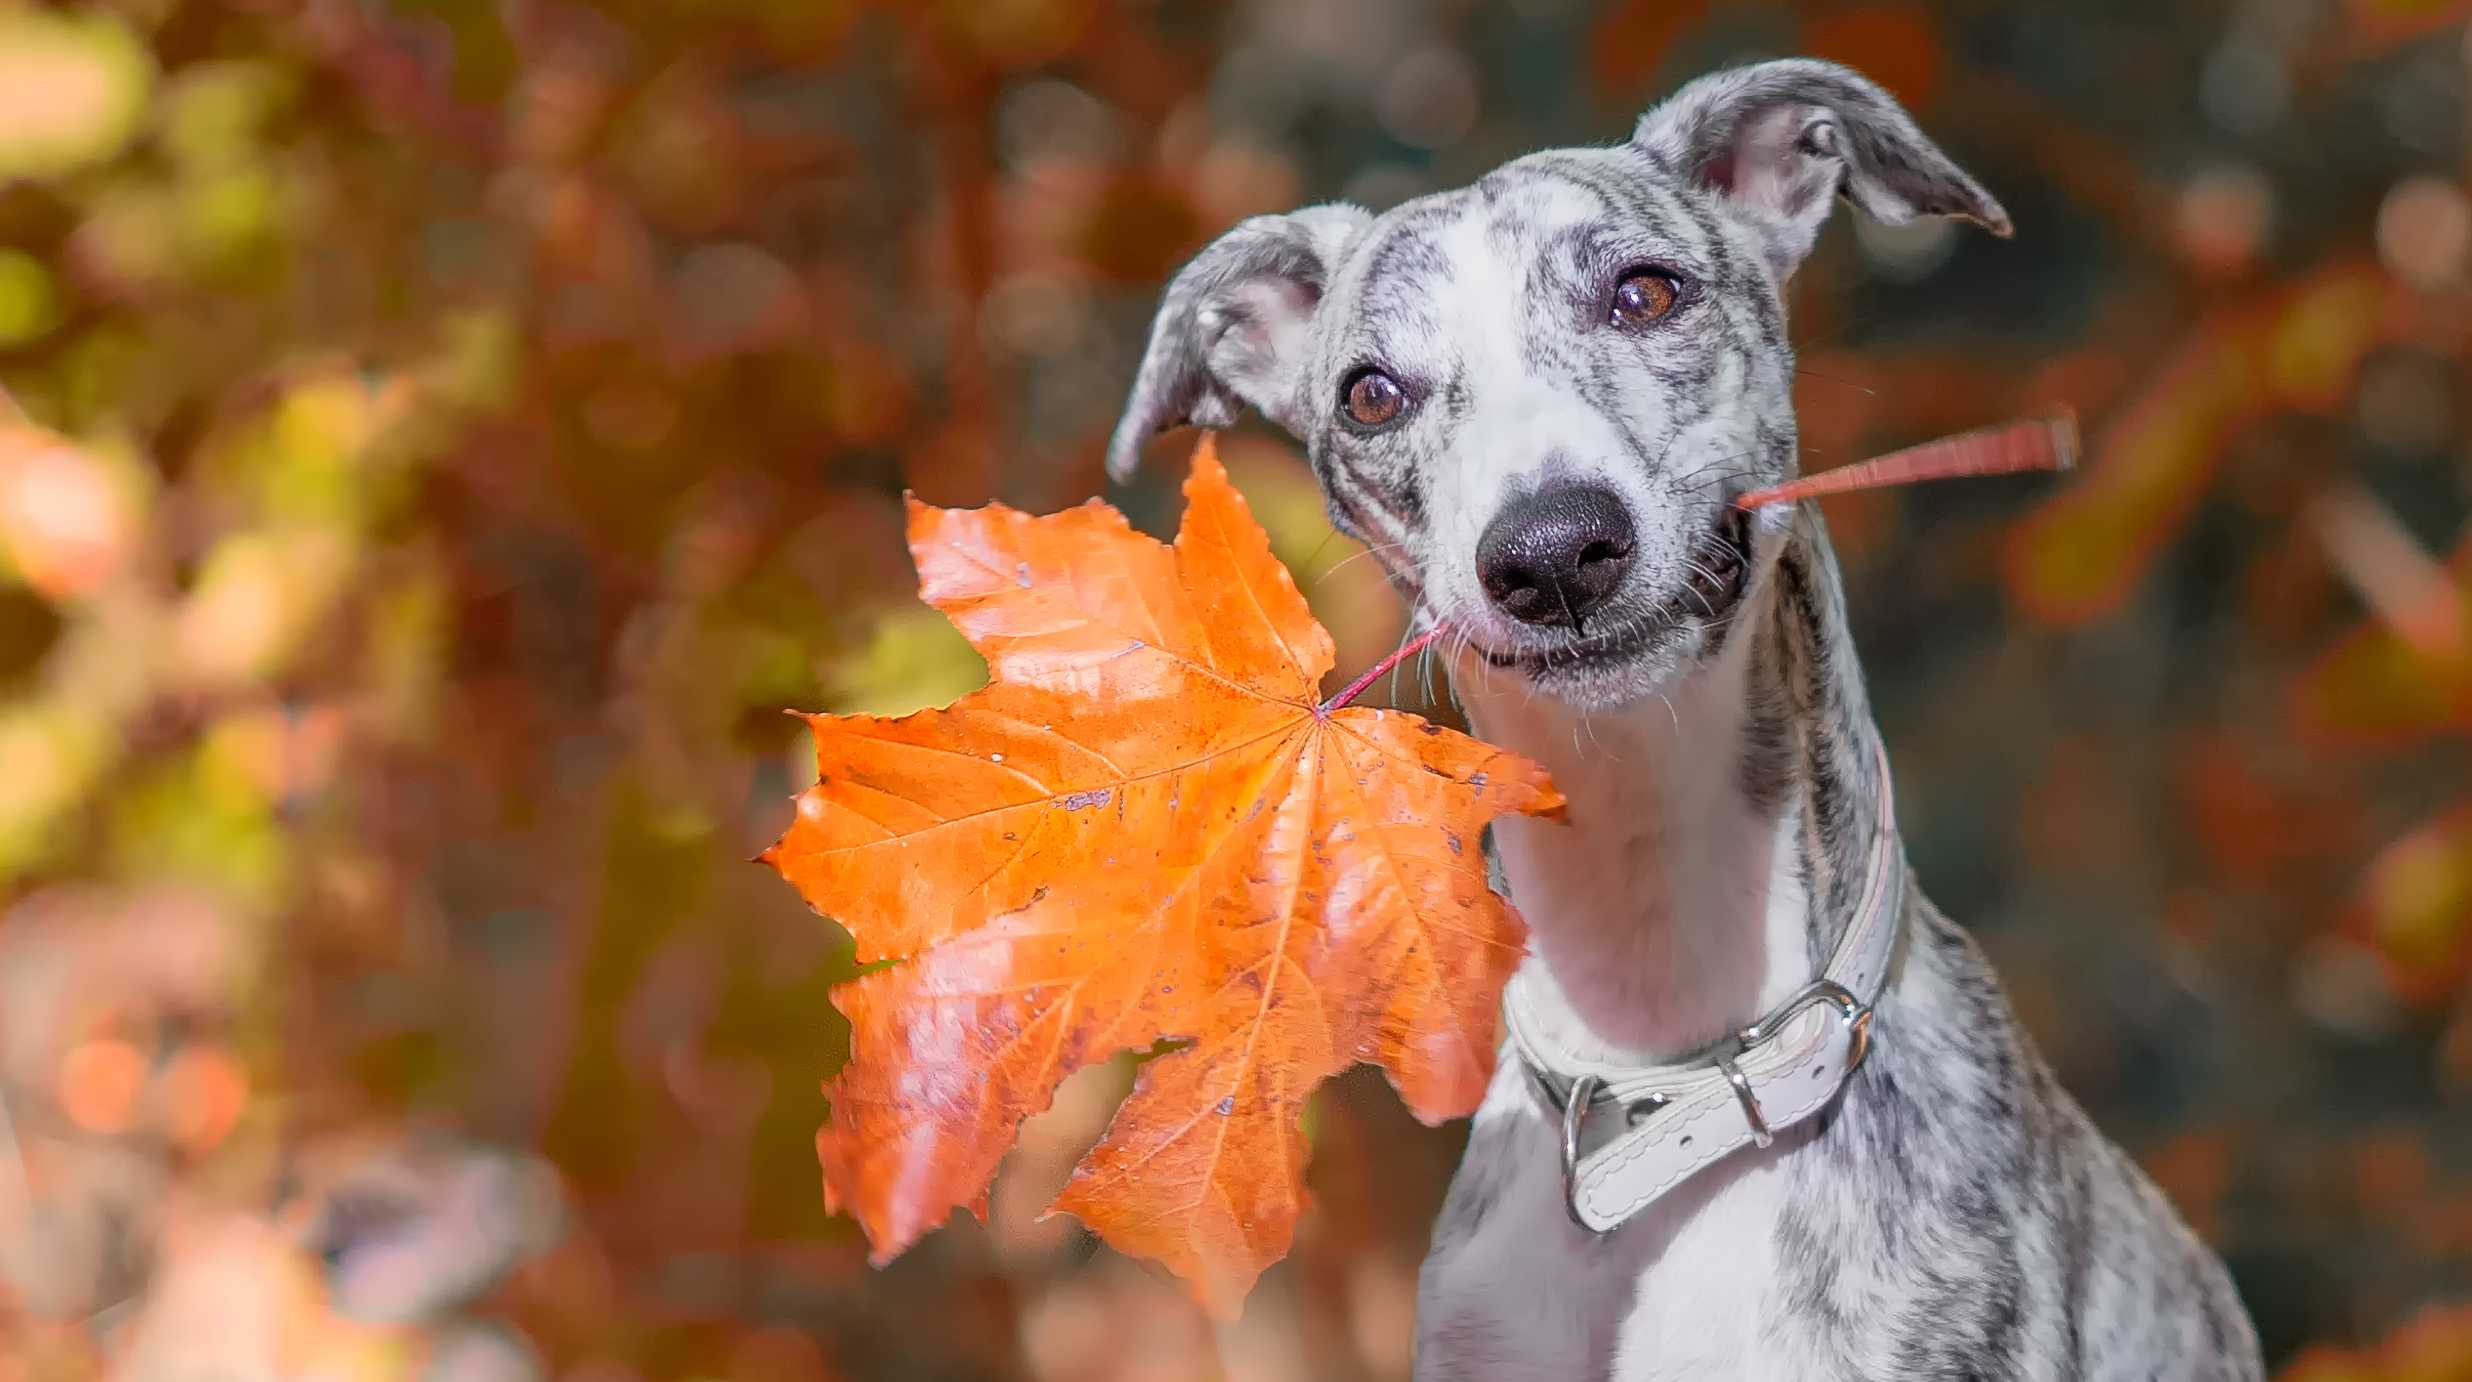 A dog with a large autumn leaf in his mouth